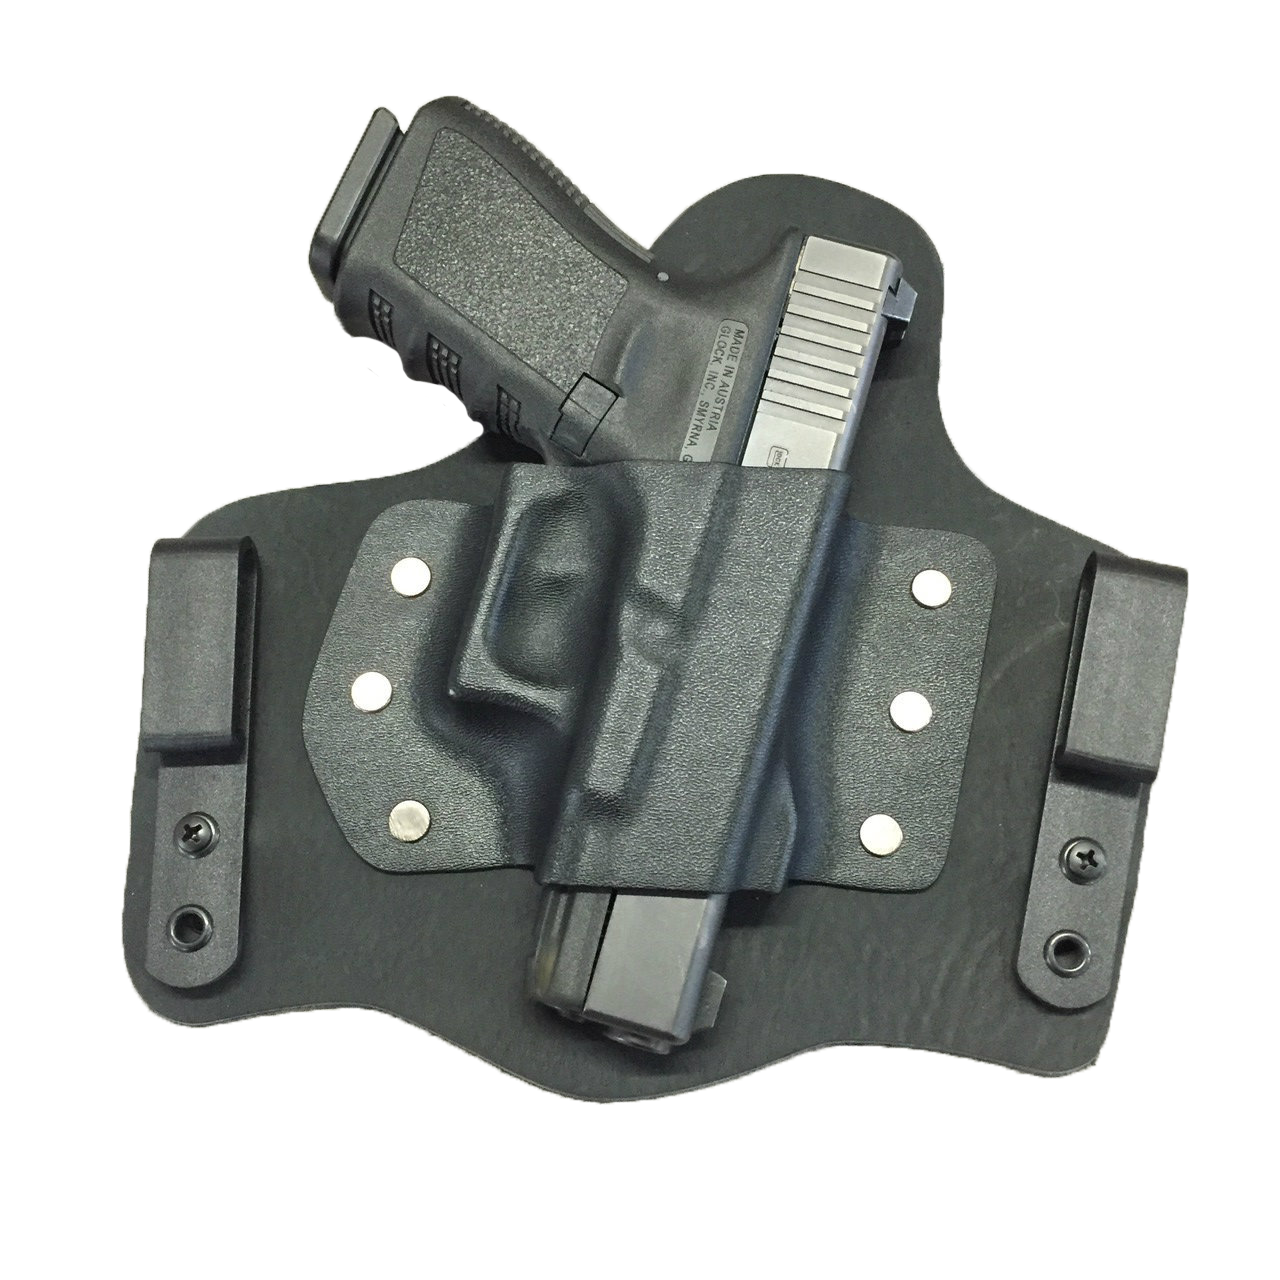 Kydex clip injection molded. Lima squared away customs